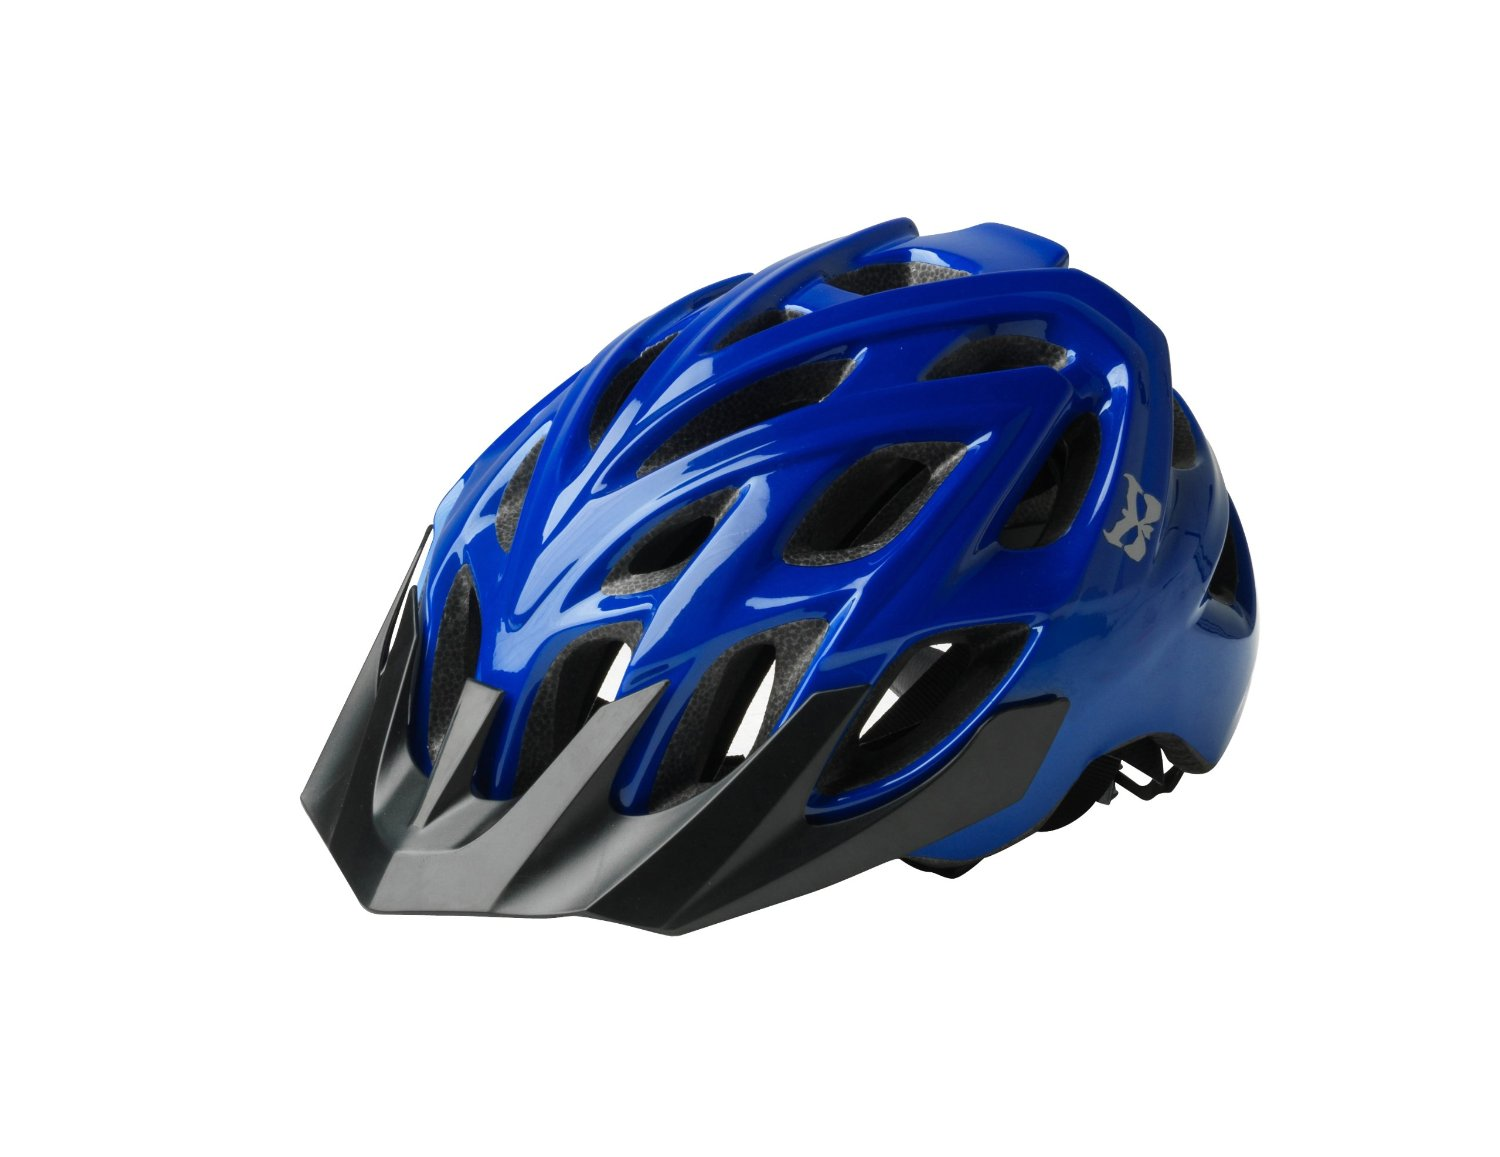 Blue Kali Protectives Bicycle Helmets